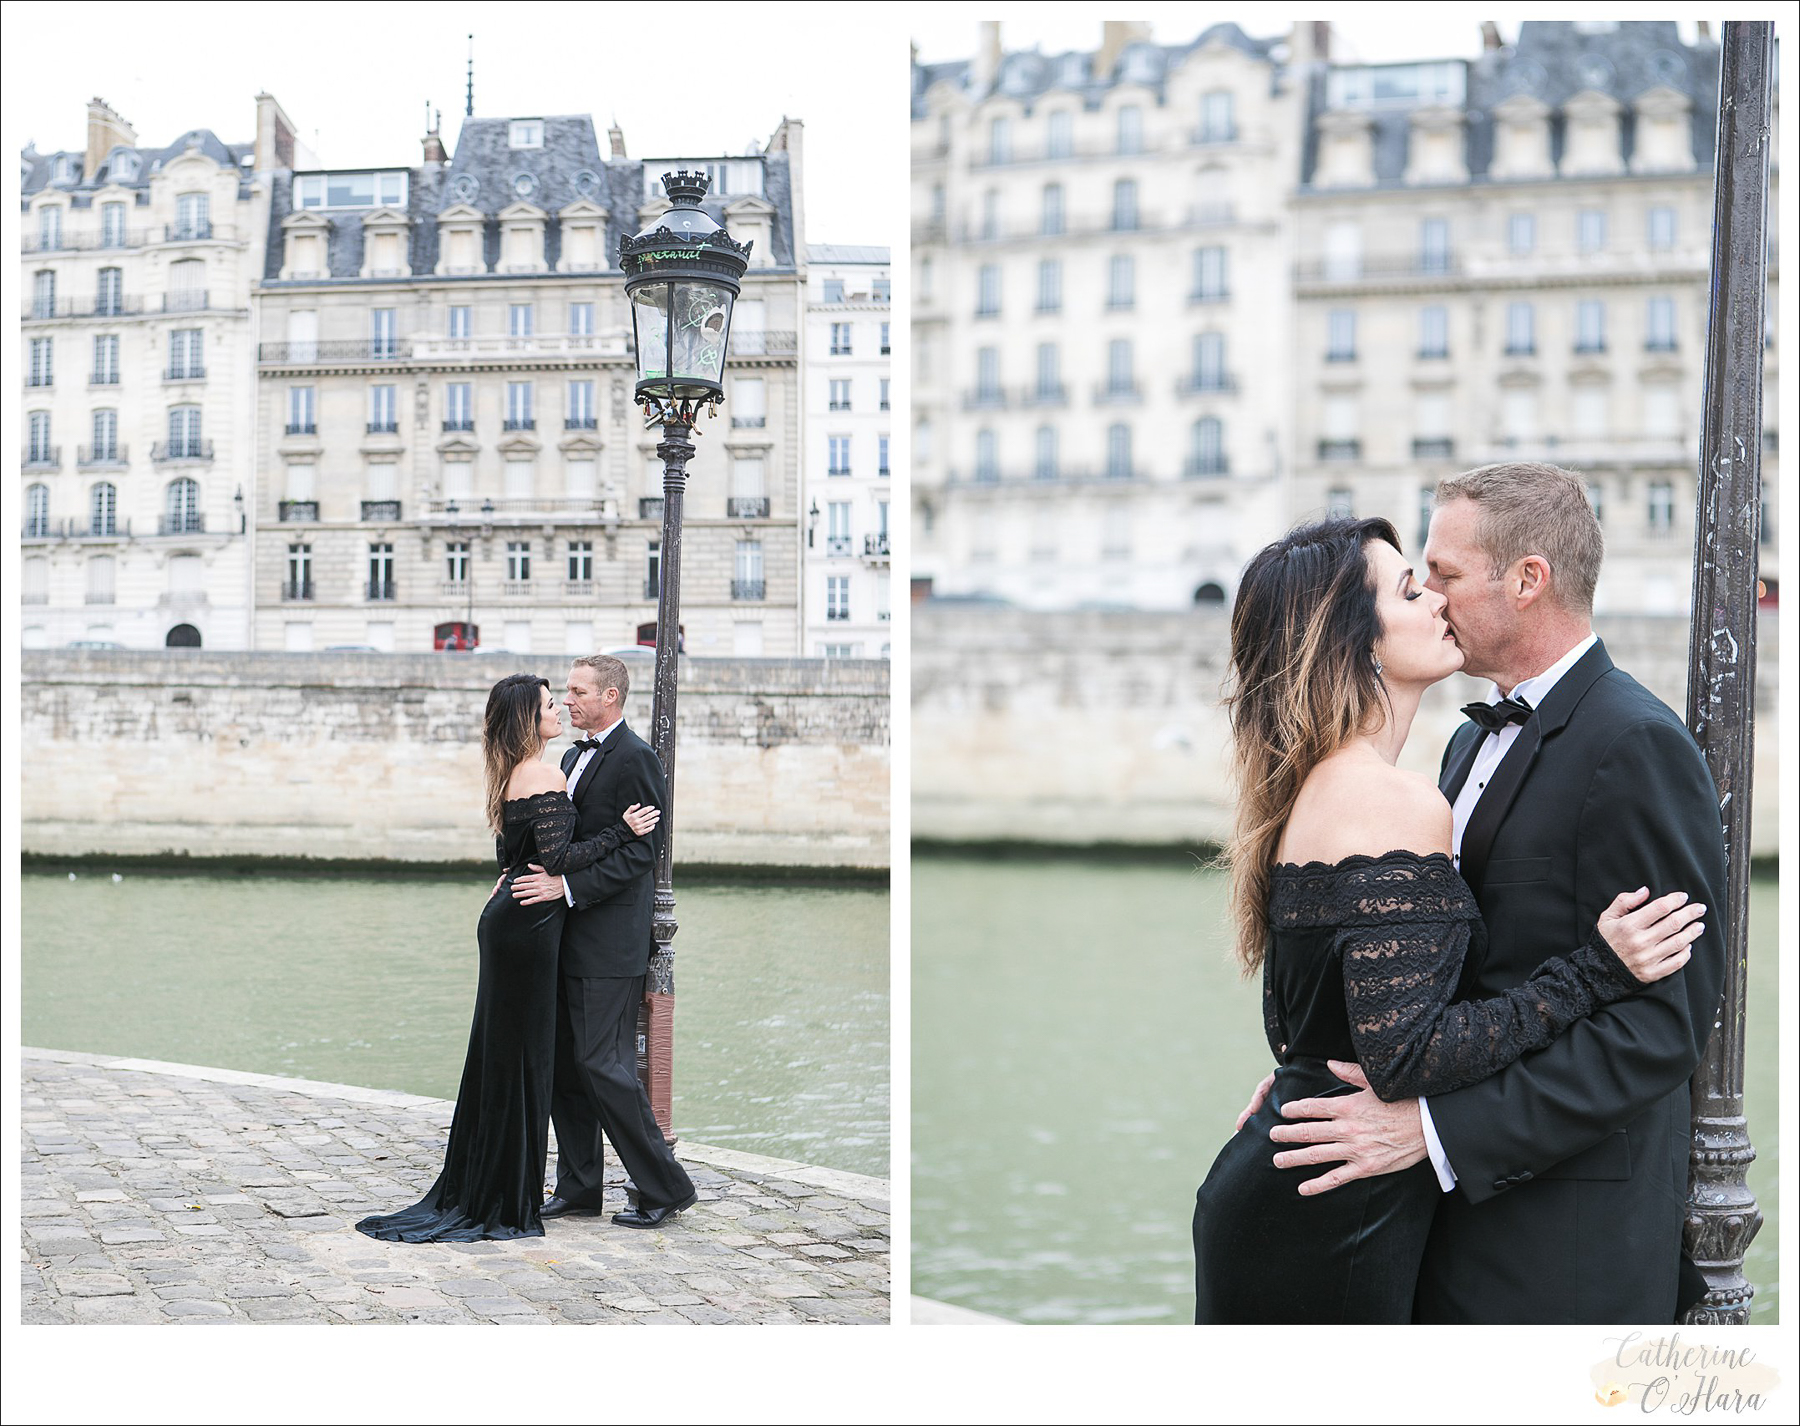 engagement photographer paris france-04.jpg